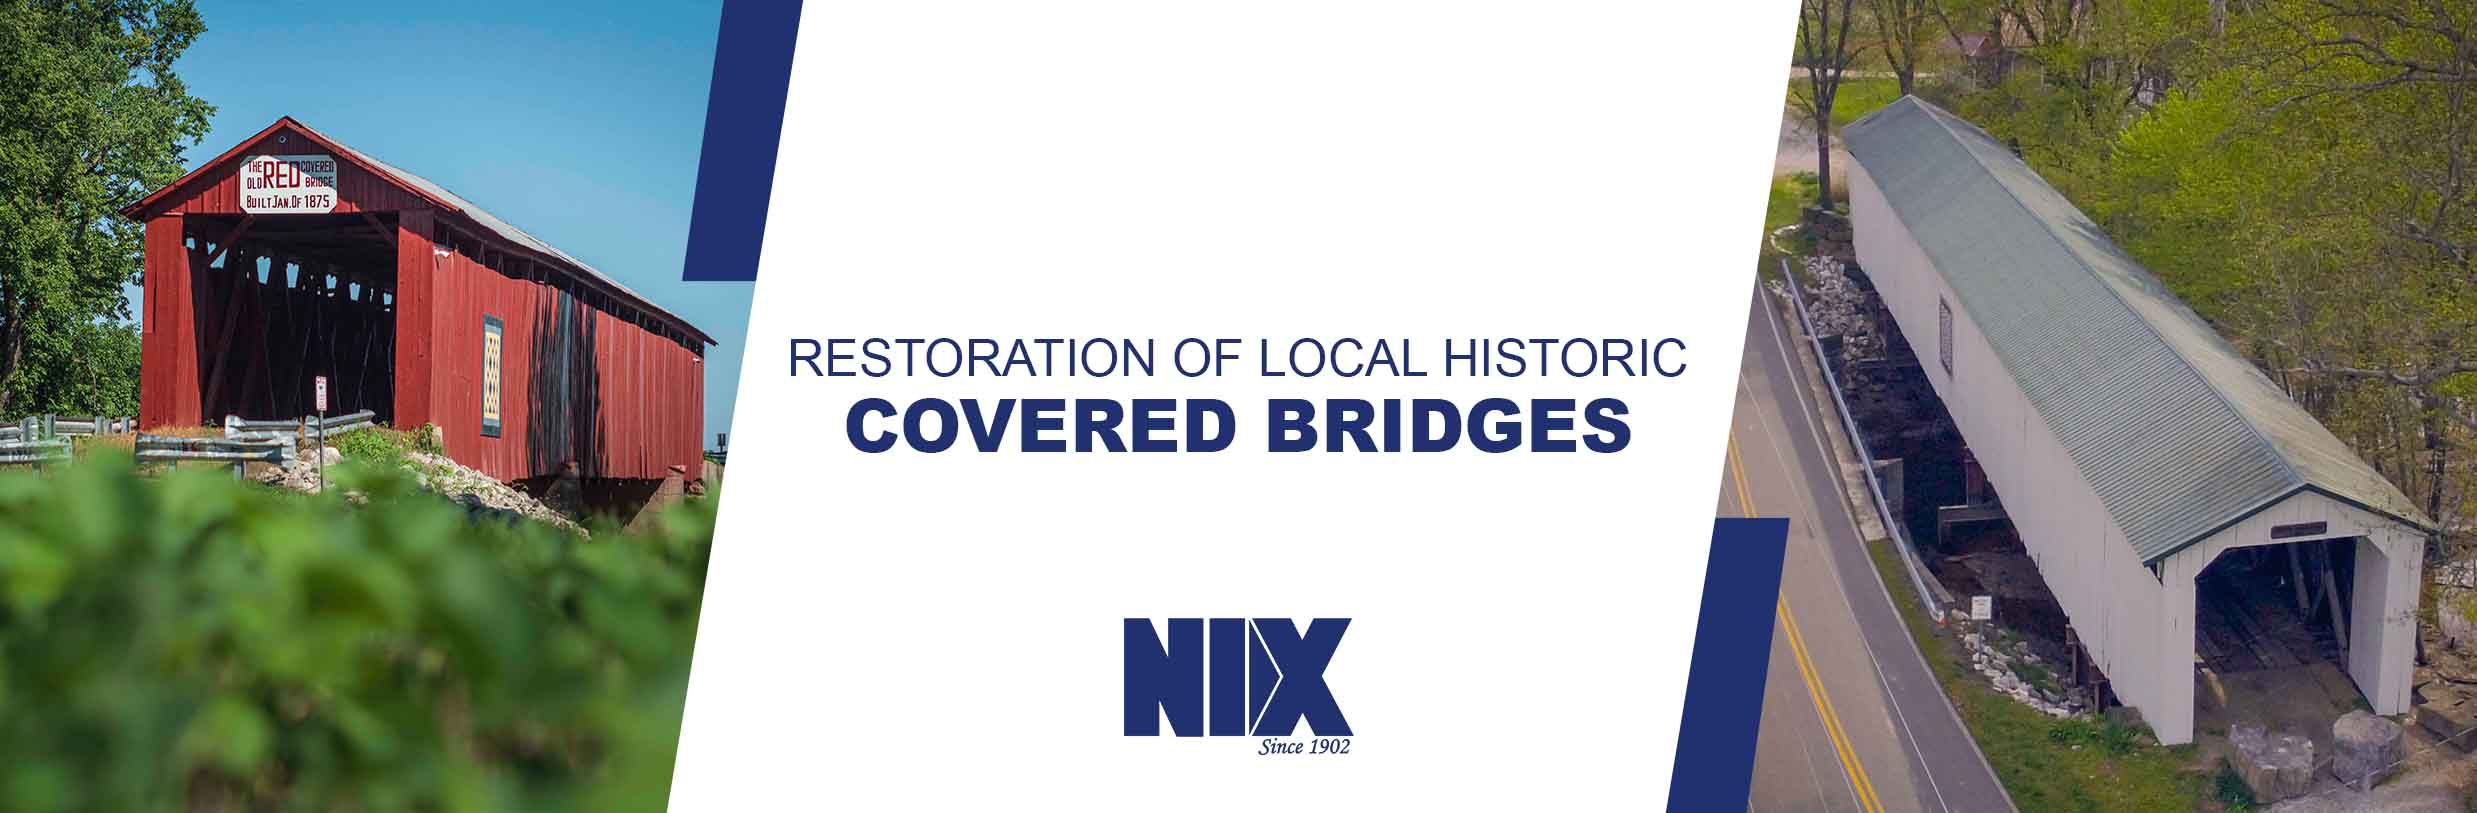 Restoration of Local Historic Covered Bridges